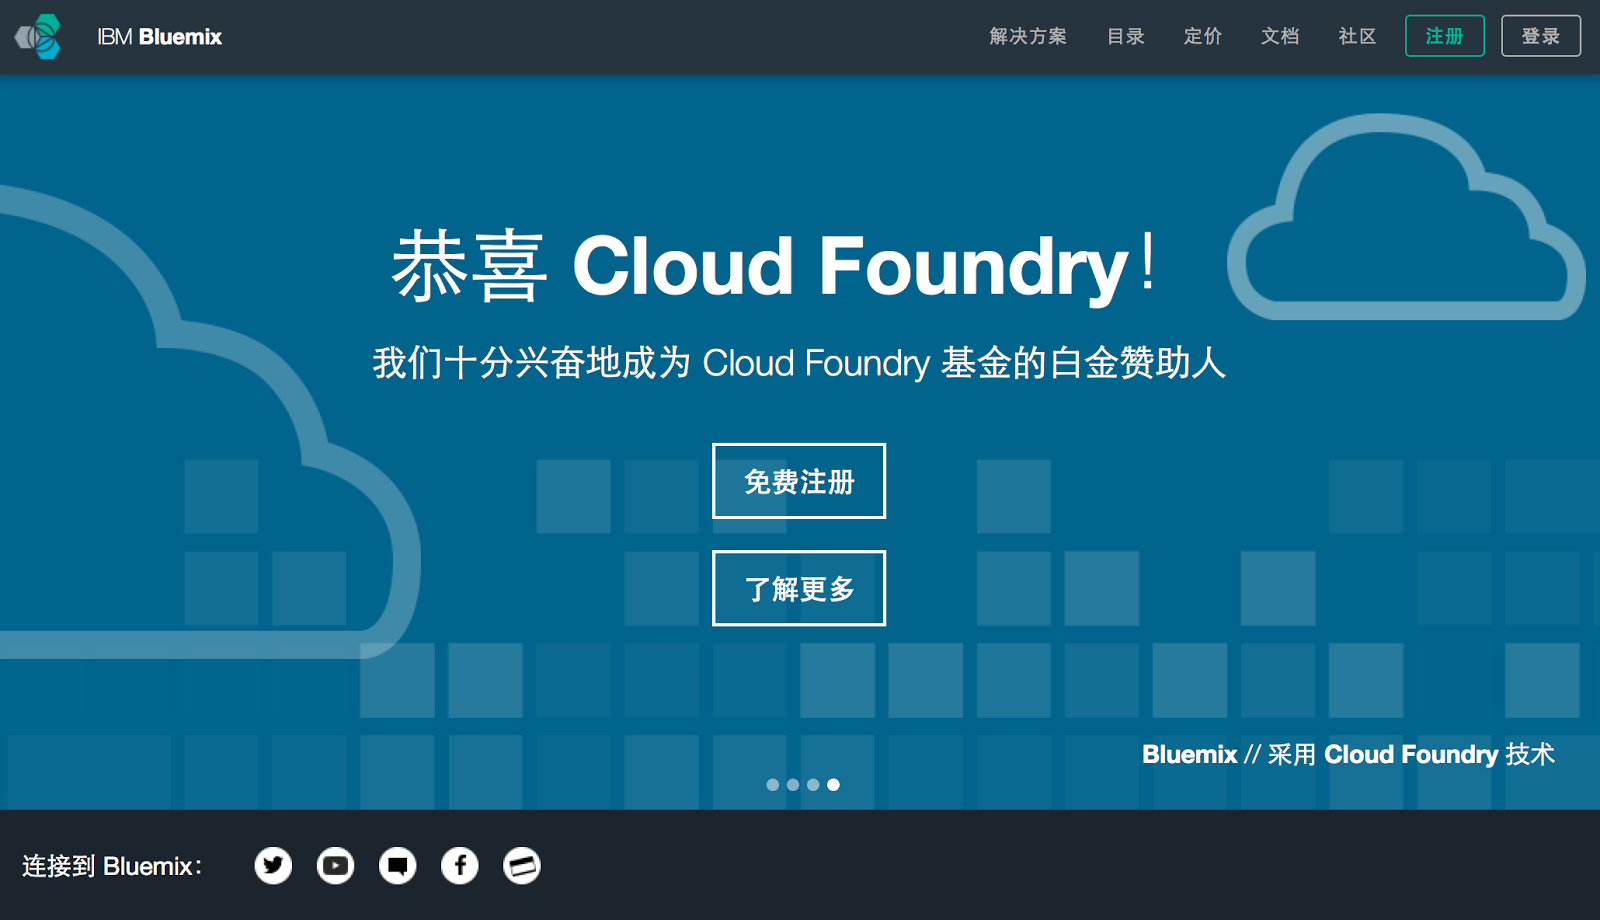 Bluemix UI Updates: Landing Page in Chinese